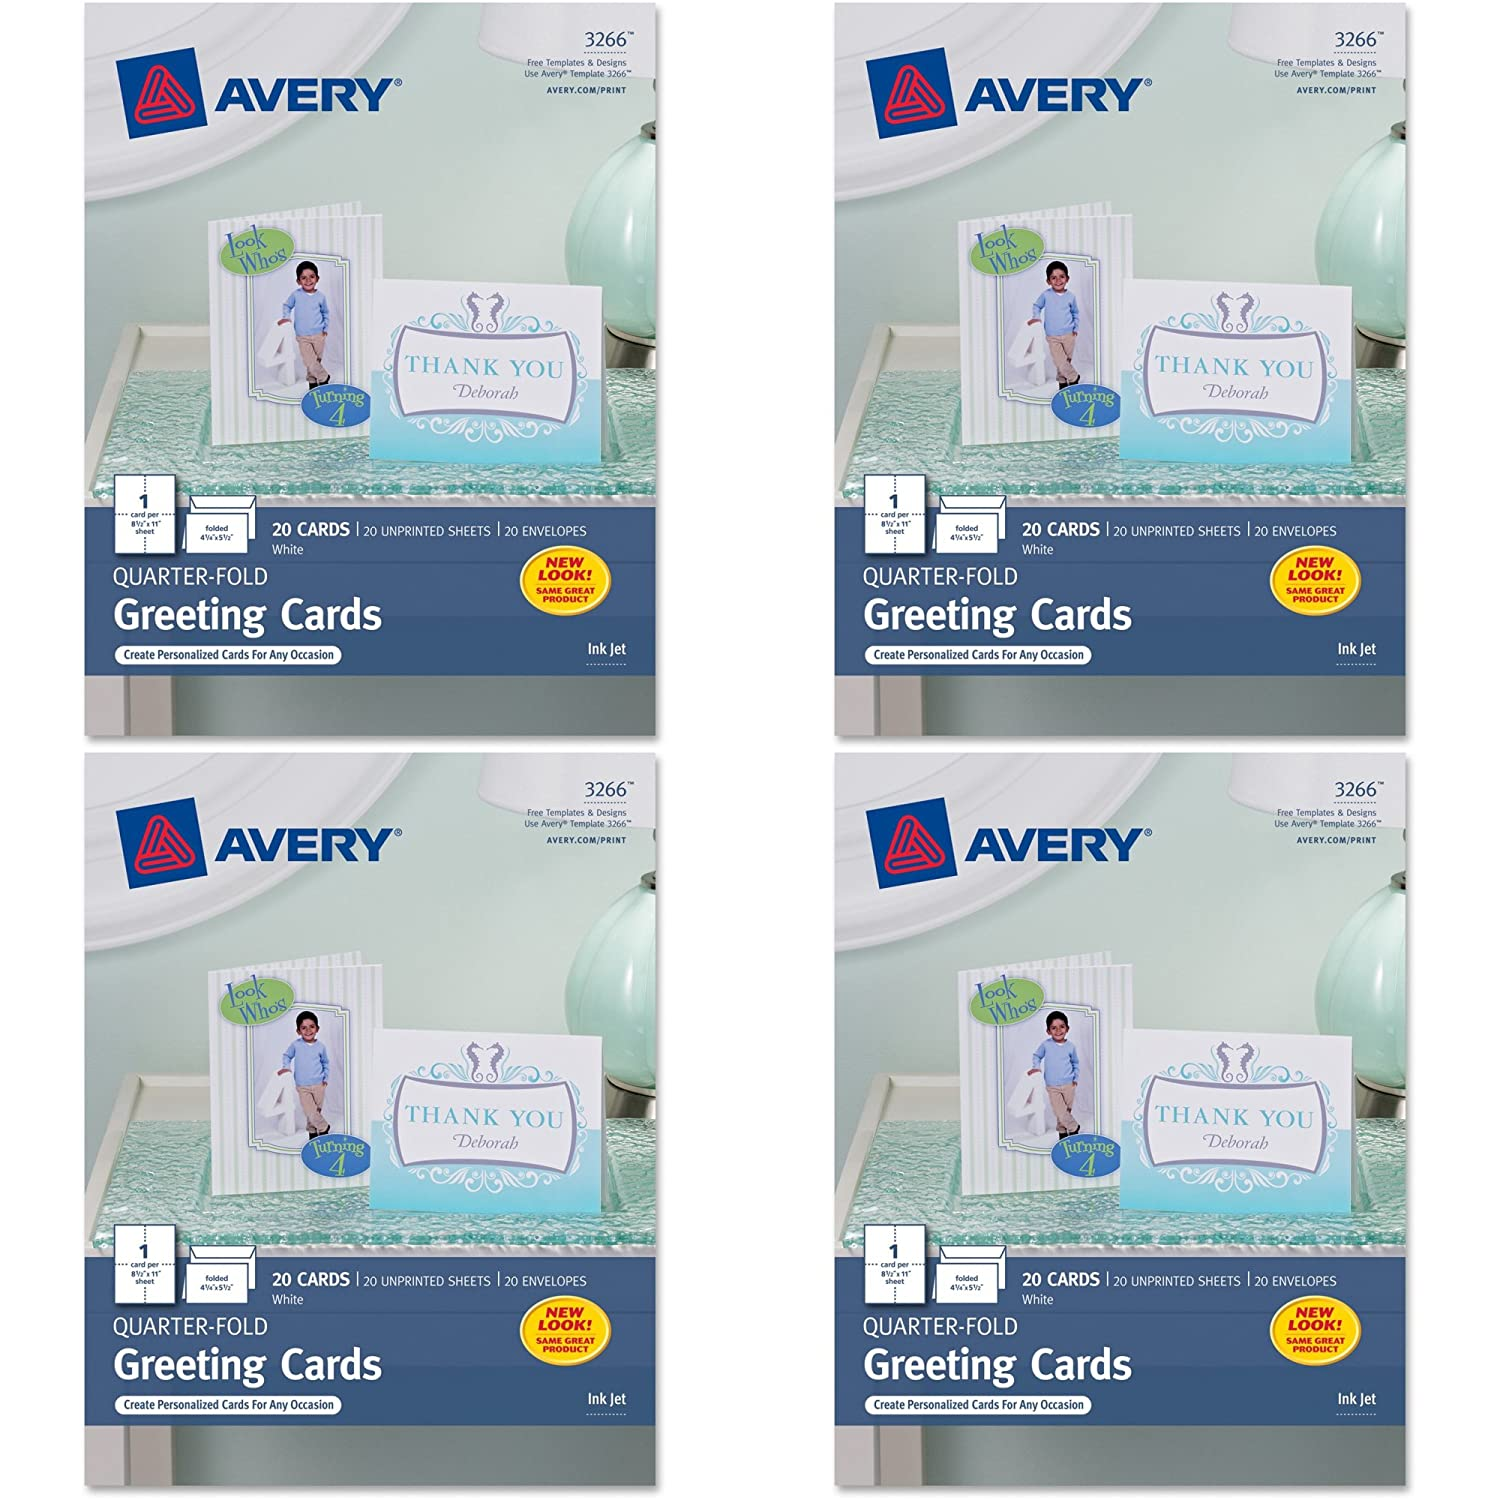 Amazon avery quarter fold greeting cards for inkjet printers amazon avery quarter fold greeting cards for inkjet printers 425 x 55 inches white pack of 20 3266 blank greeting cards office products m4hsunfo